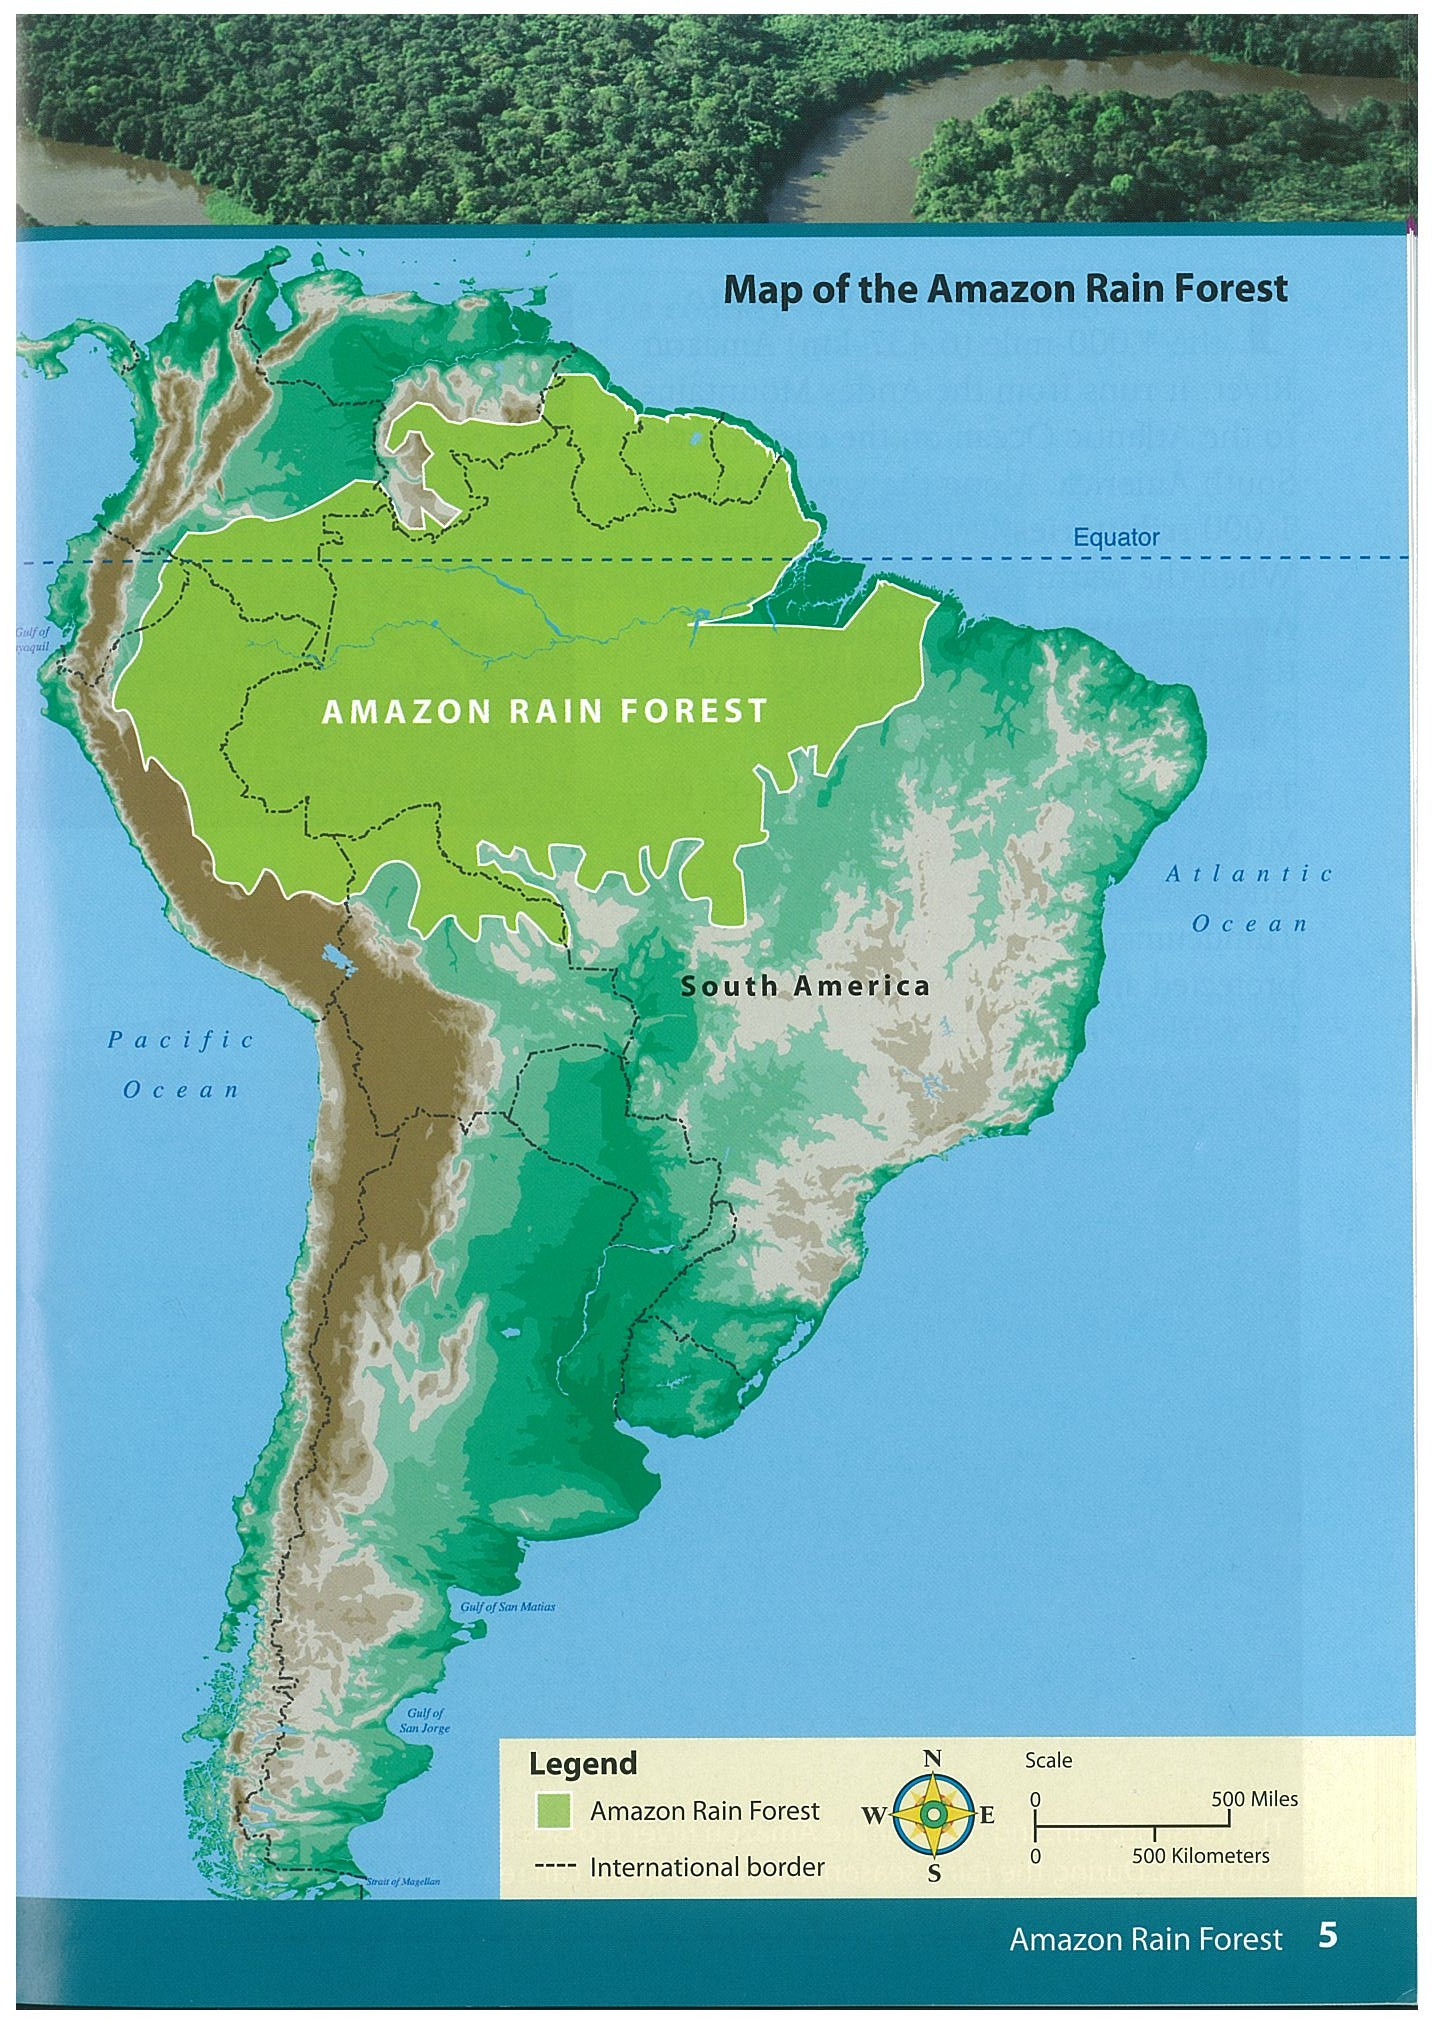 Is the amazon basin and the amazon rainforest the same ...